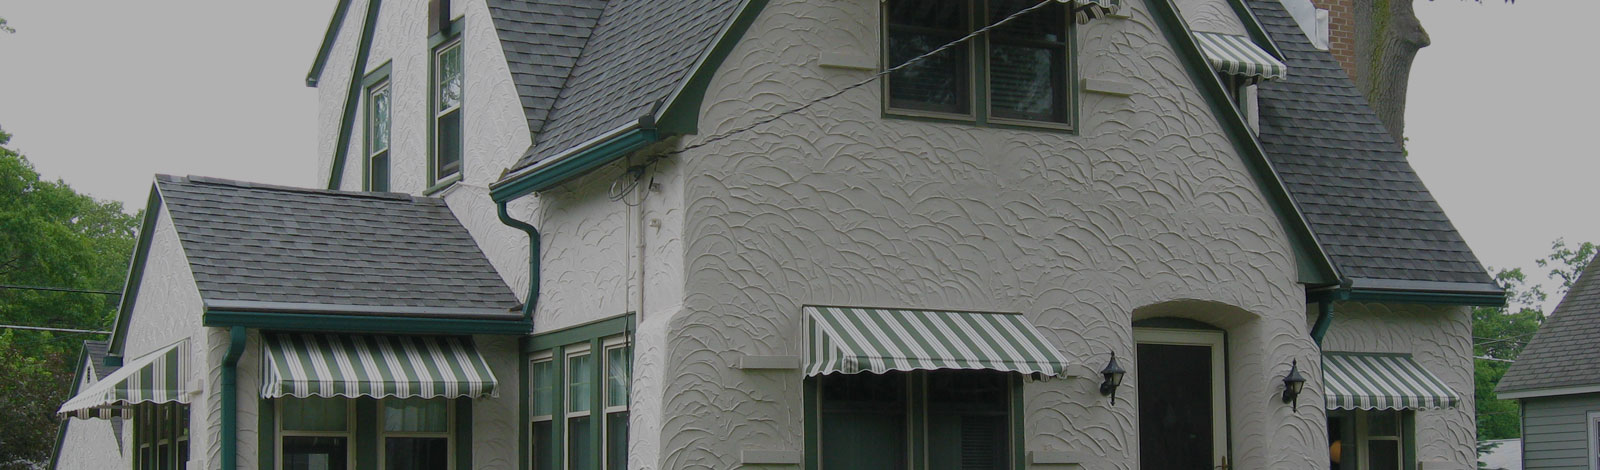 Contact Muskegon Awning Today At 231-759-0911